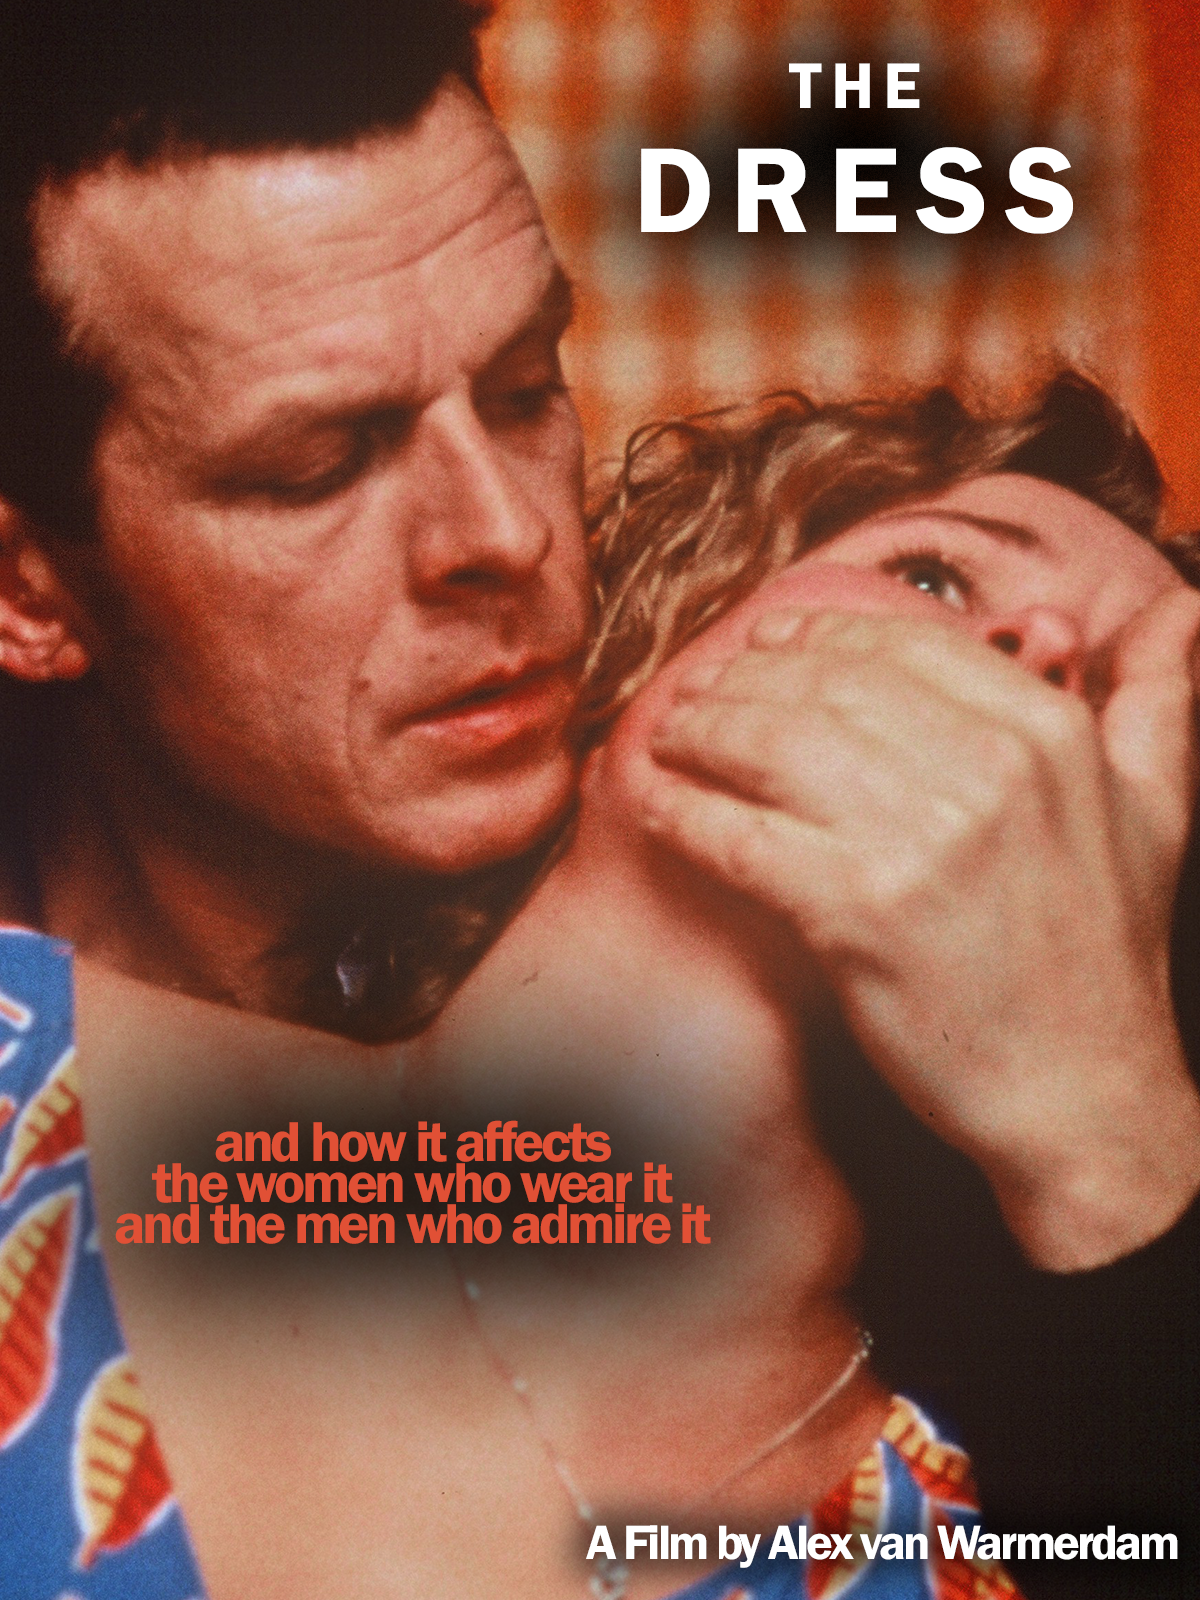 THE DRESS 1200X1600 ARTWORK AMAZON